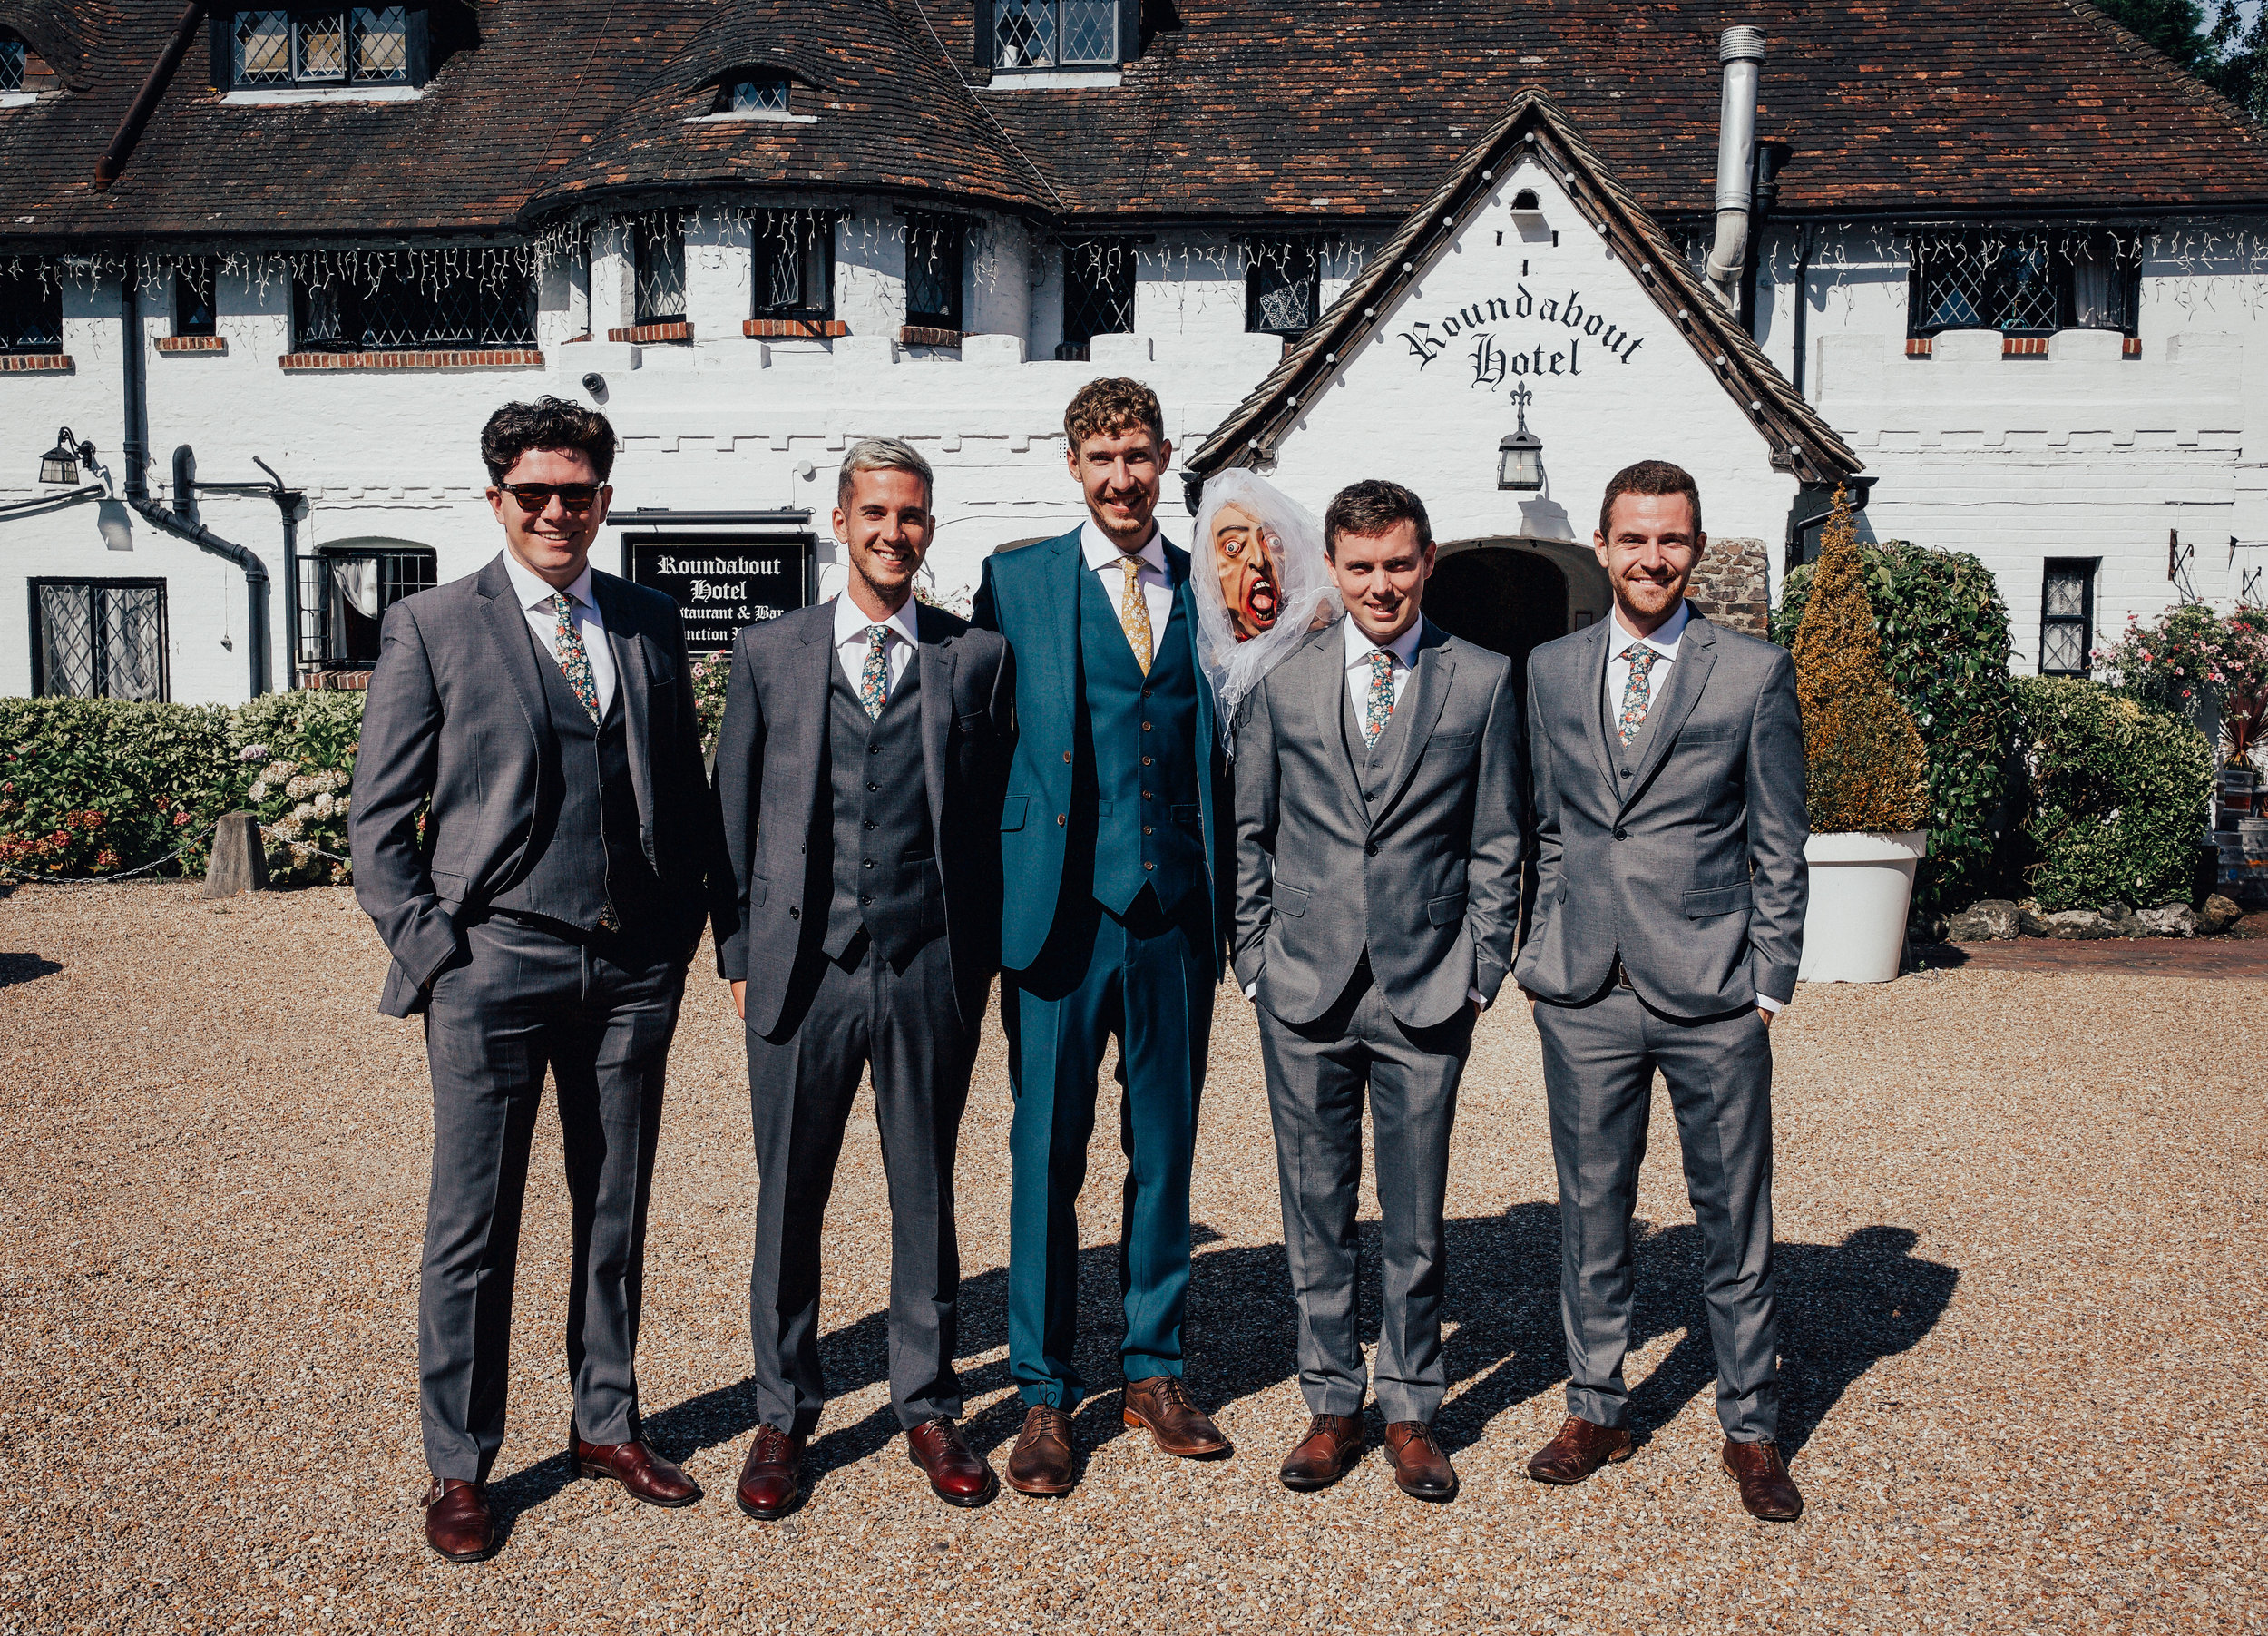 TWO_WOODS_ESTATE_WEDDING_PULBOROUGH_PJ_PHILLIPS_PHOTOGRAPHY_FRAN_&_GEORGE_39.jpg